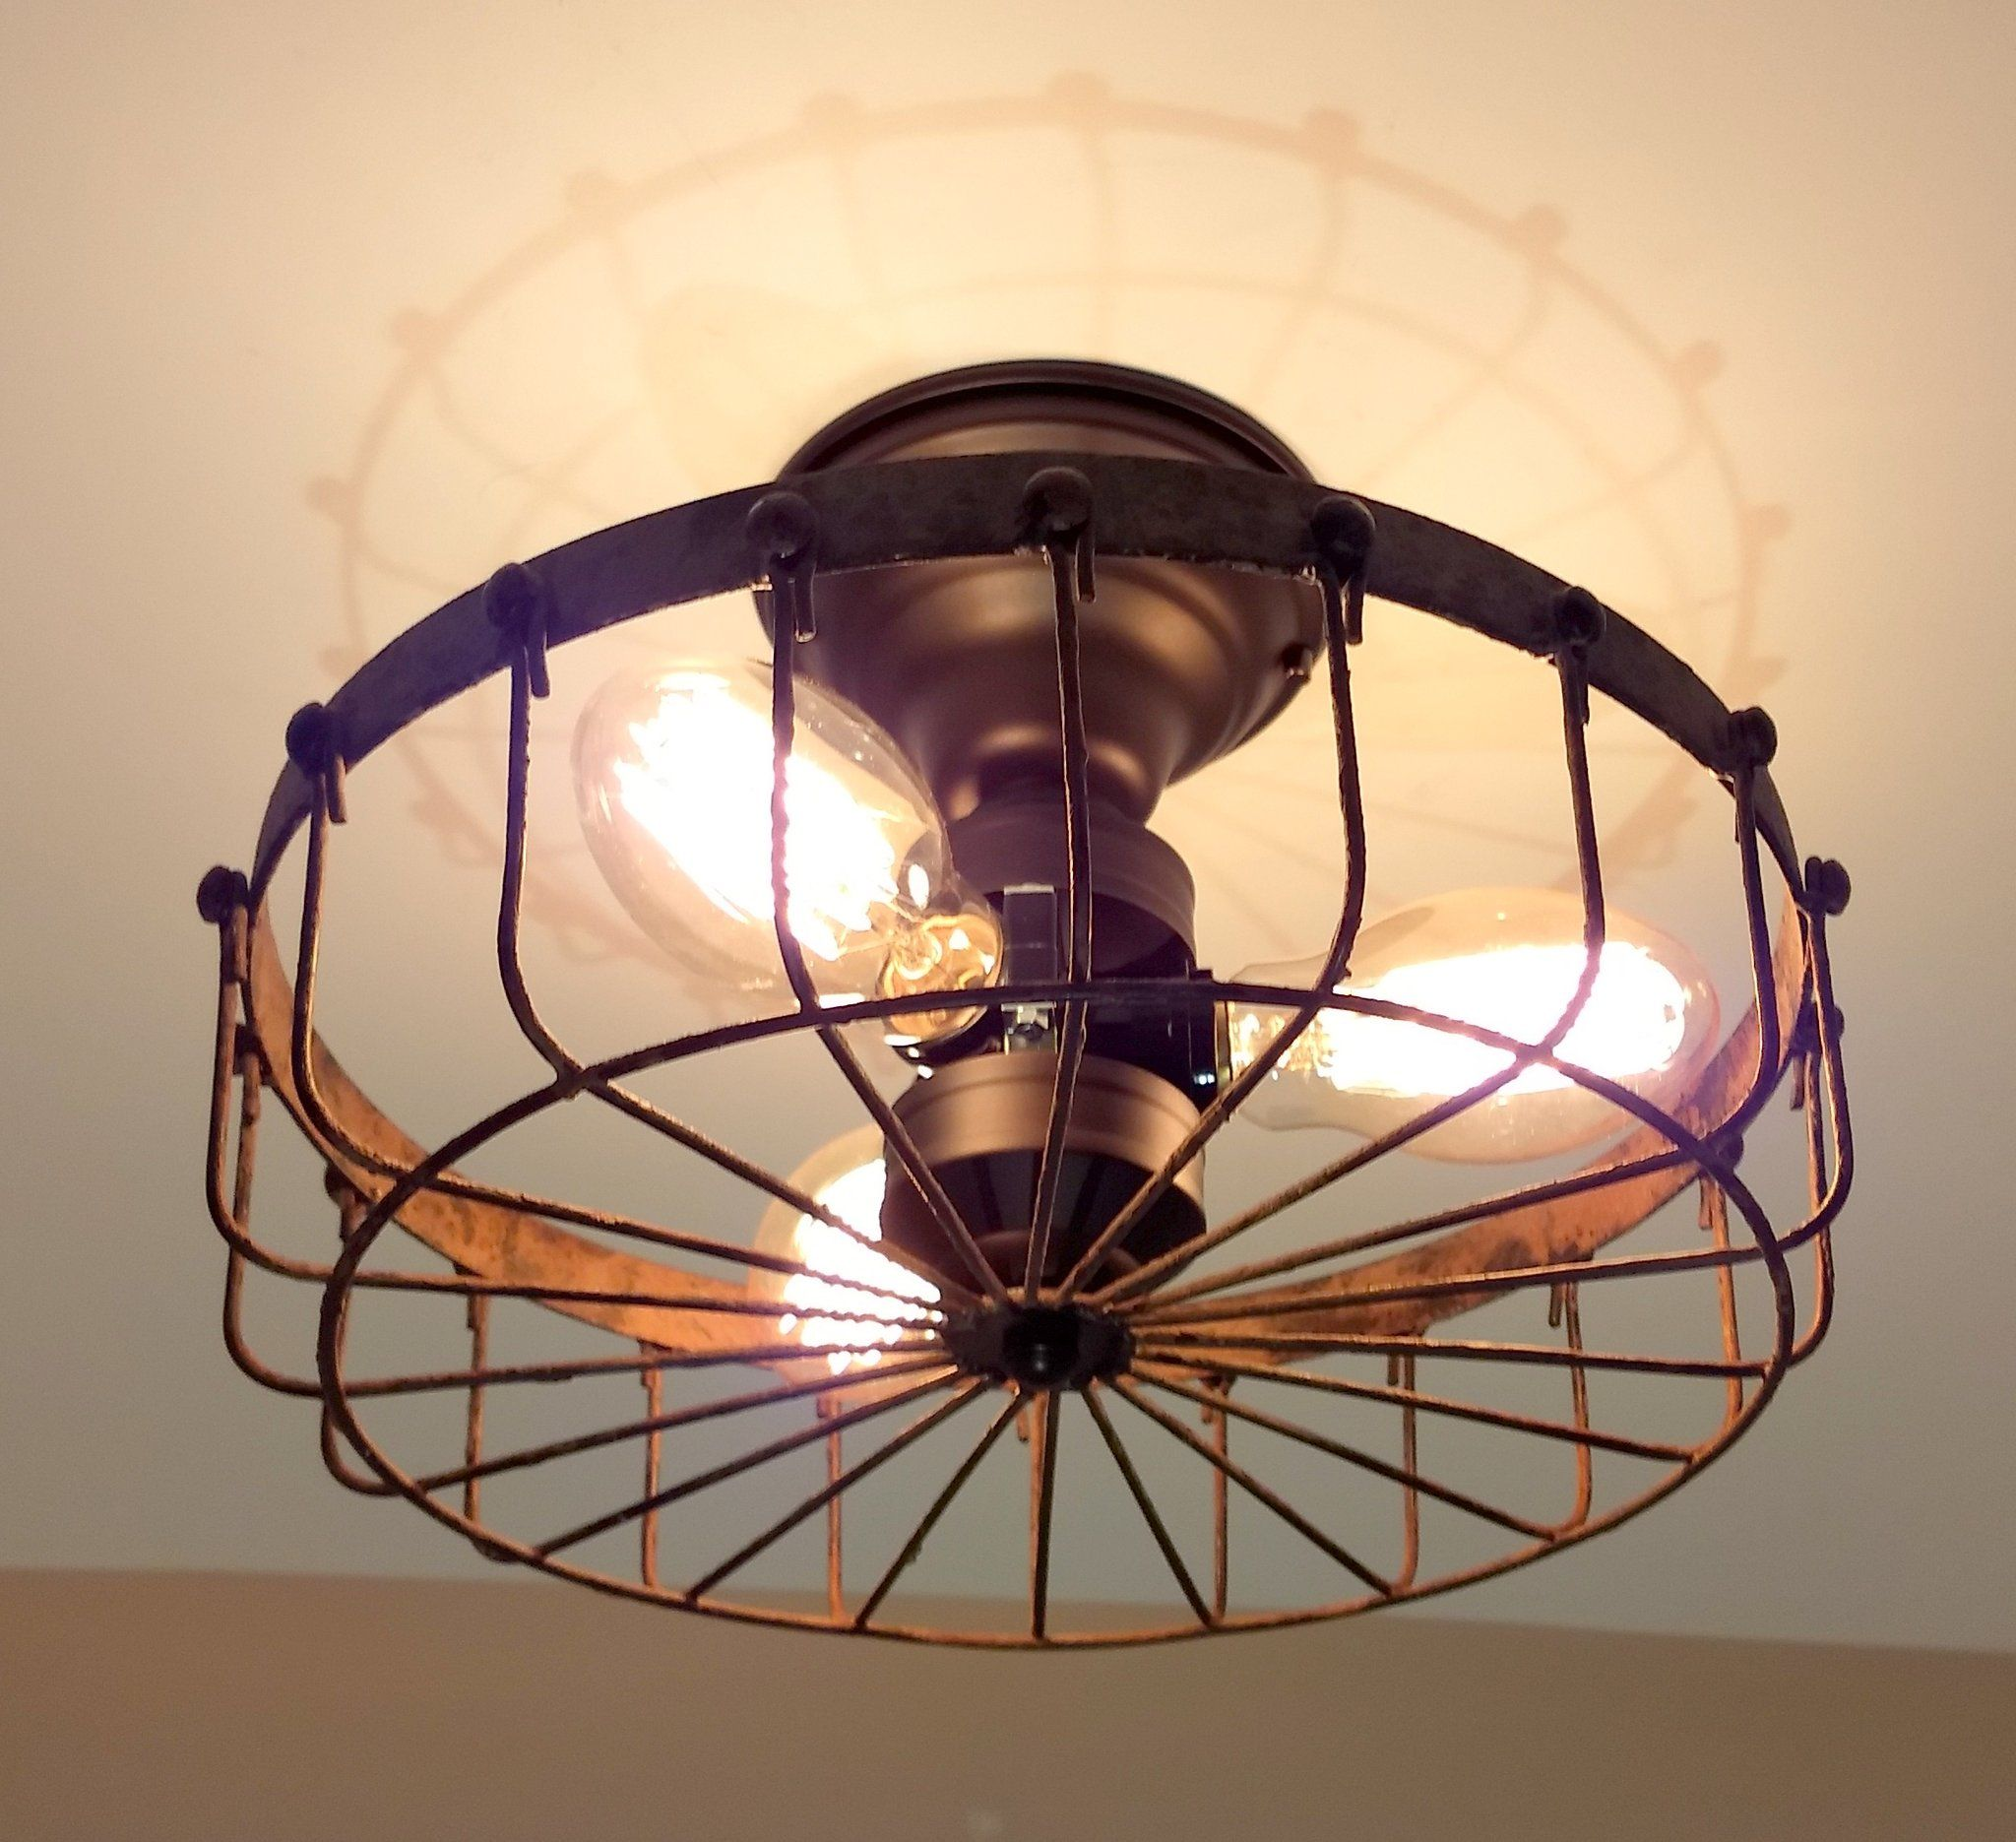 Rustic Industrial Flush Mount Ceiling Light Cage The Lamp Goods Industrial Light Fixtures Industrial Ceiling Lights Farmhouse Light Fixtures